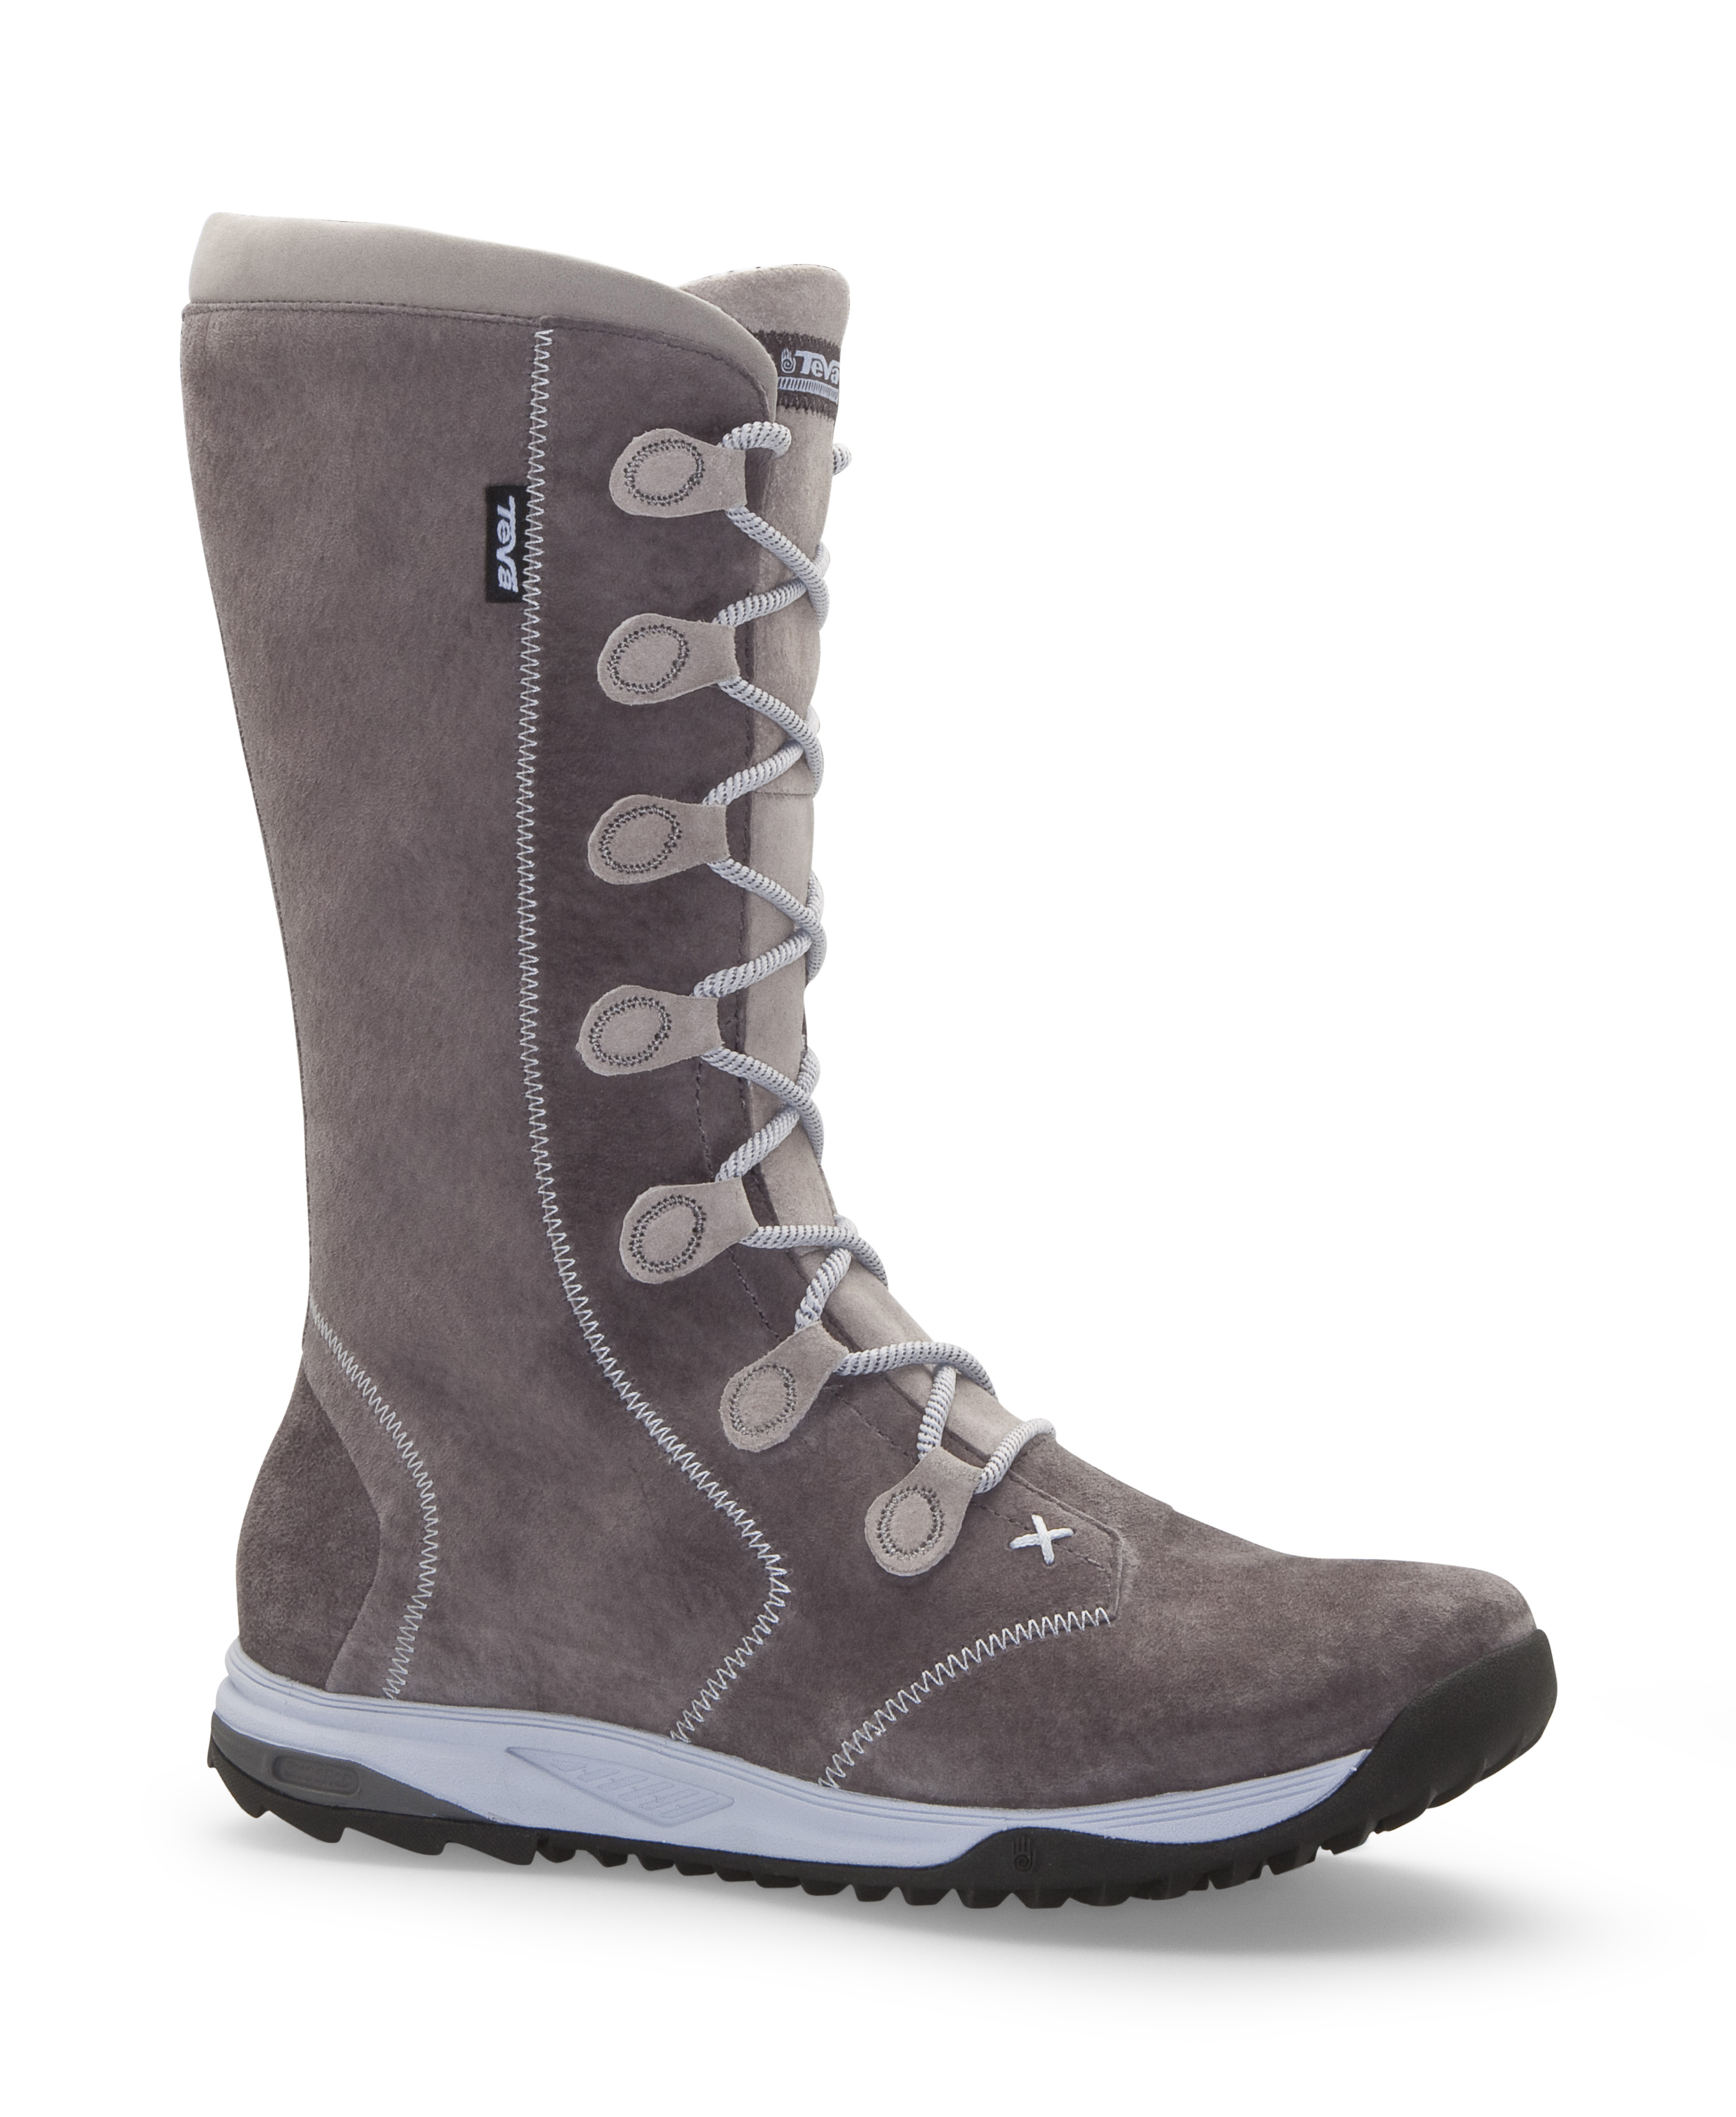 Vero Boot WP in Dark Gull Grey